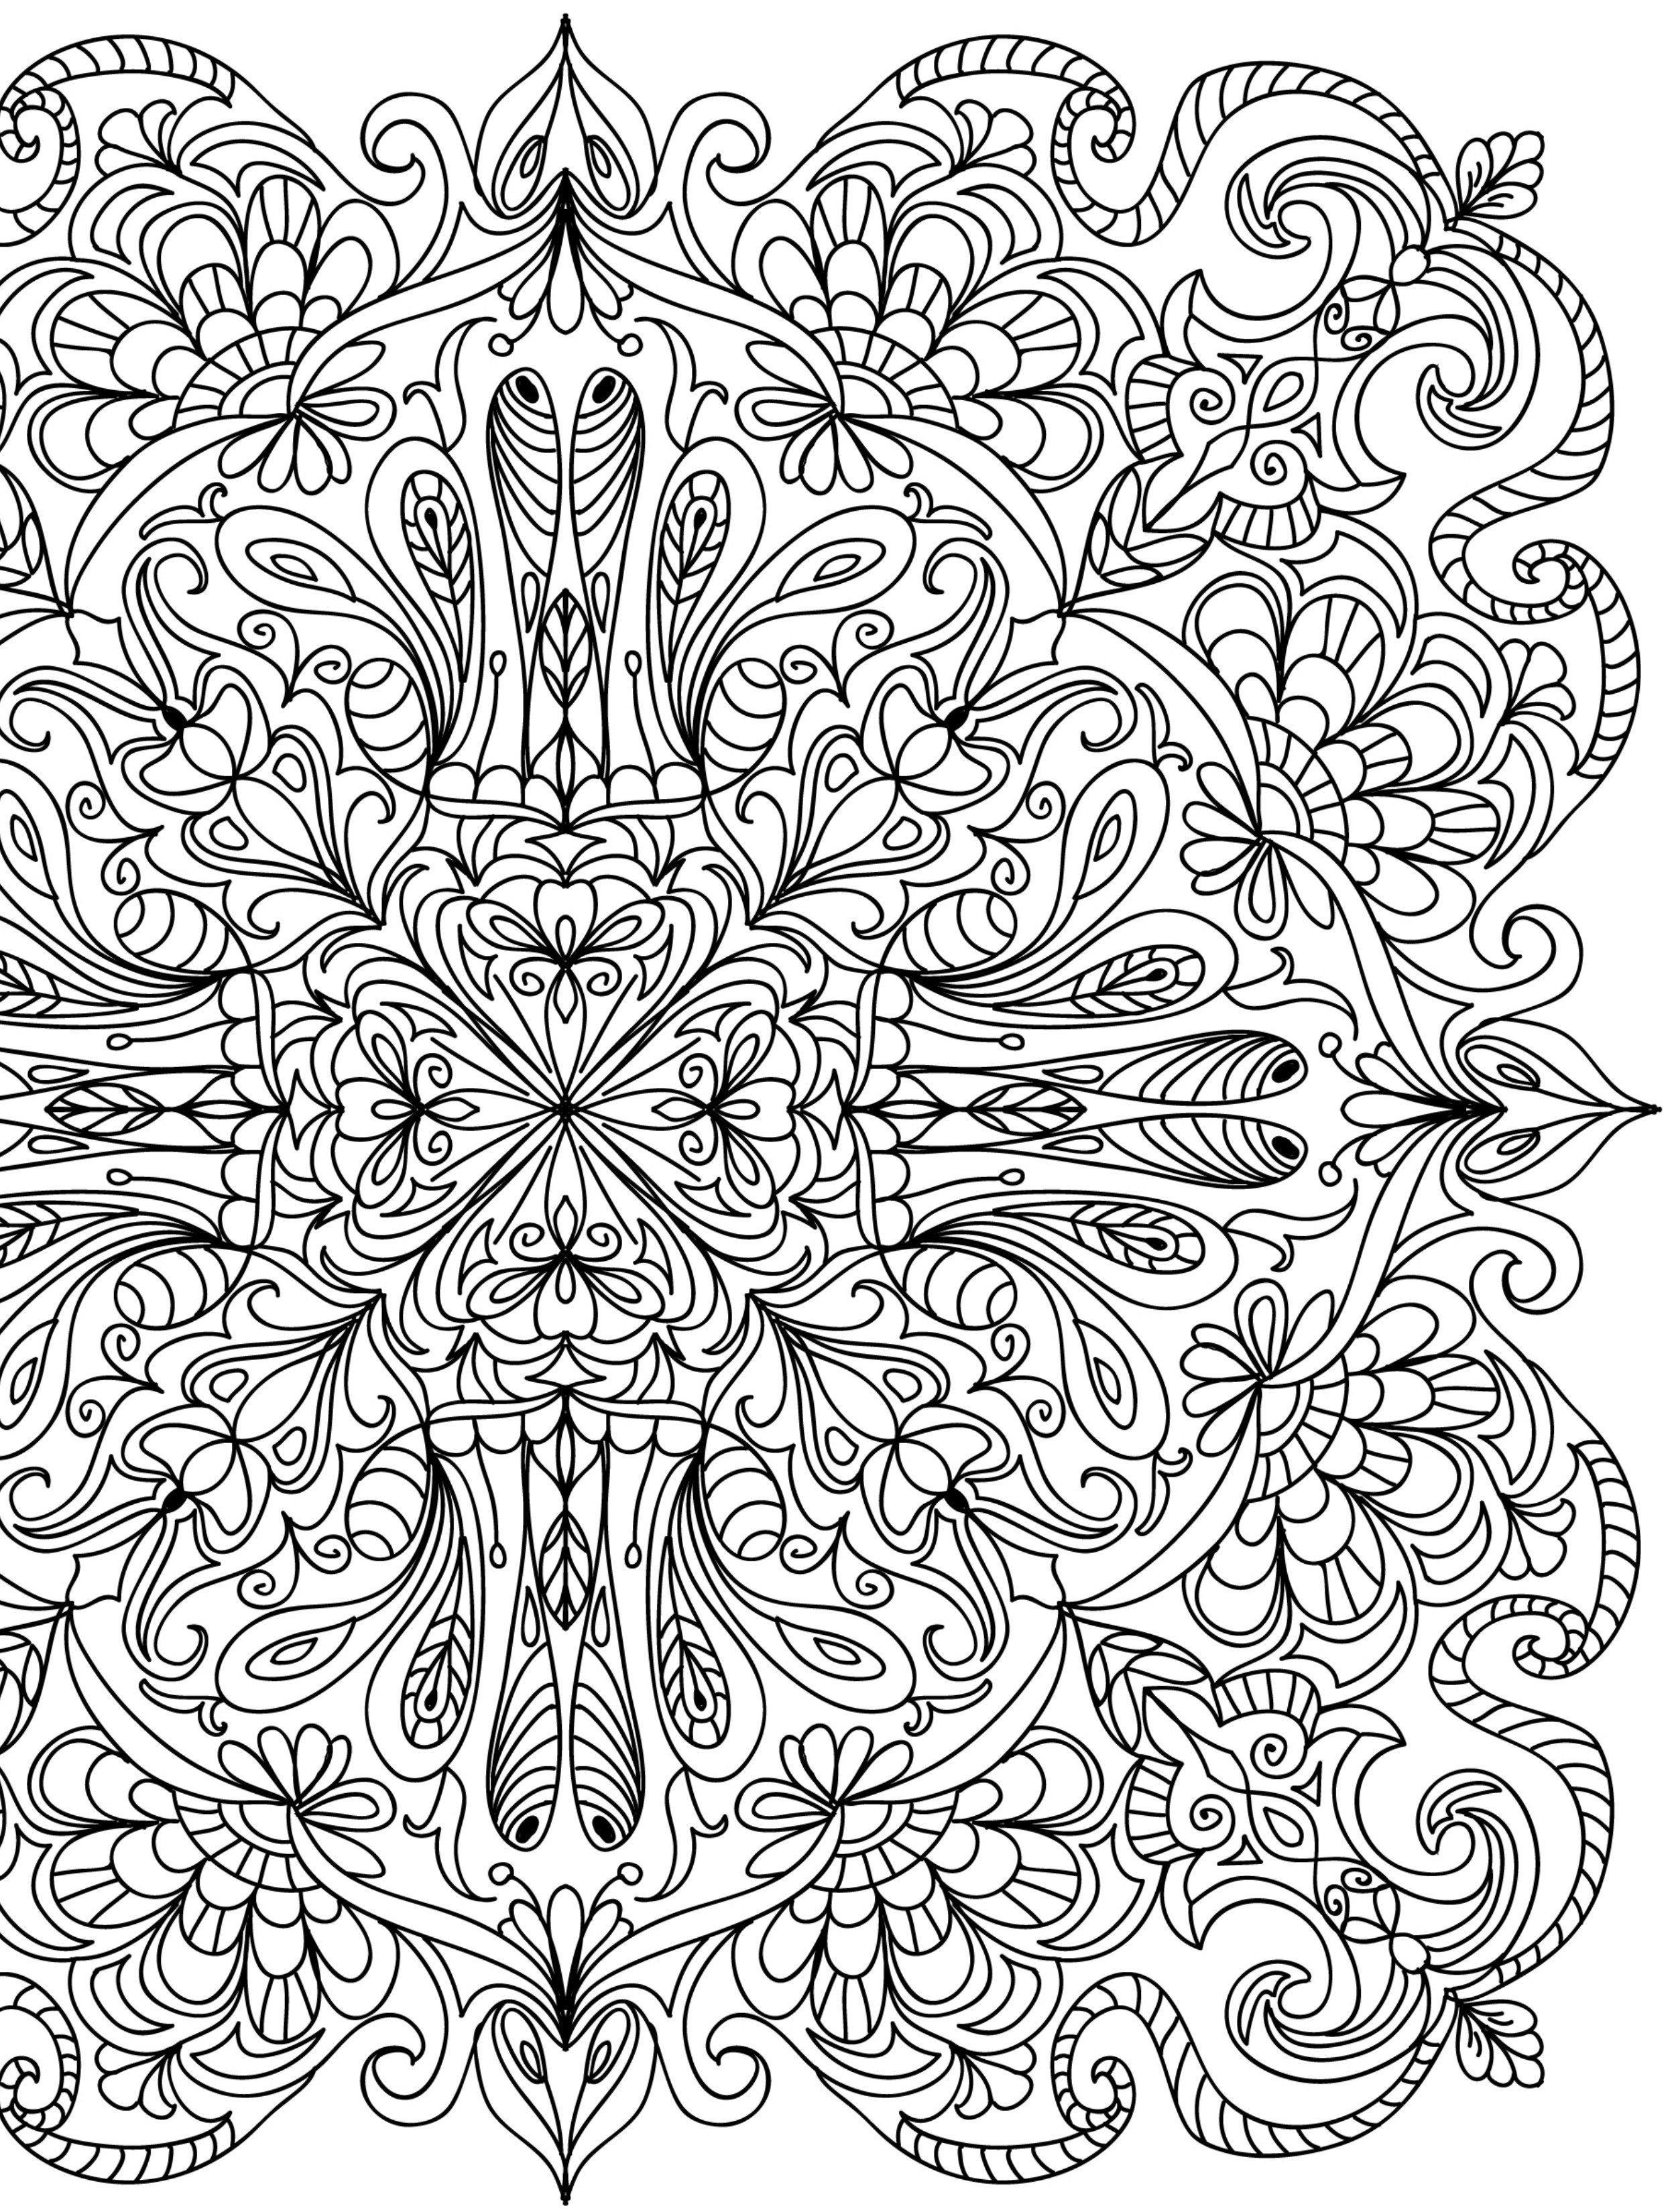 2500x3300 Crazy Busy Coloring Pages For Adults Adult Coloring Pages